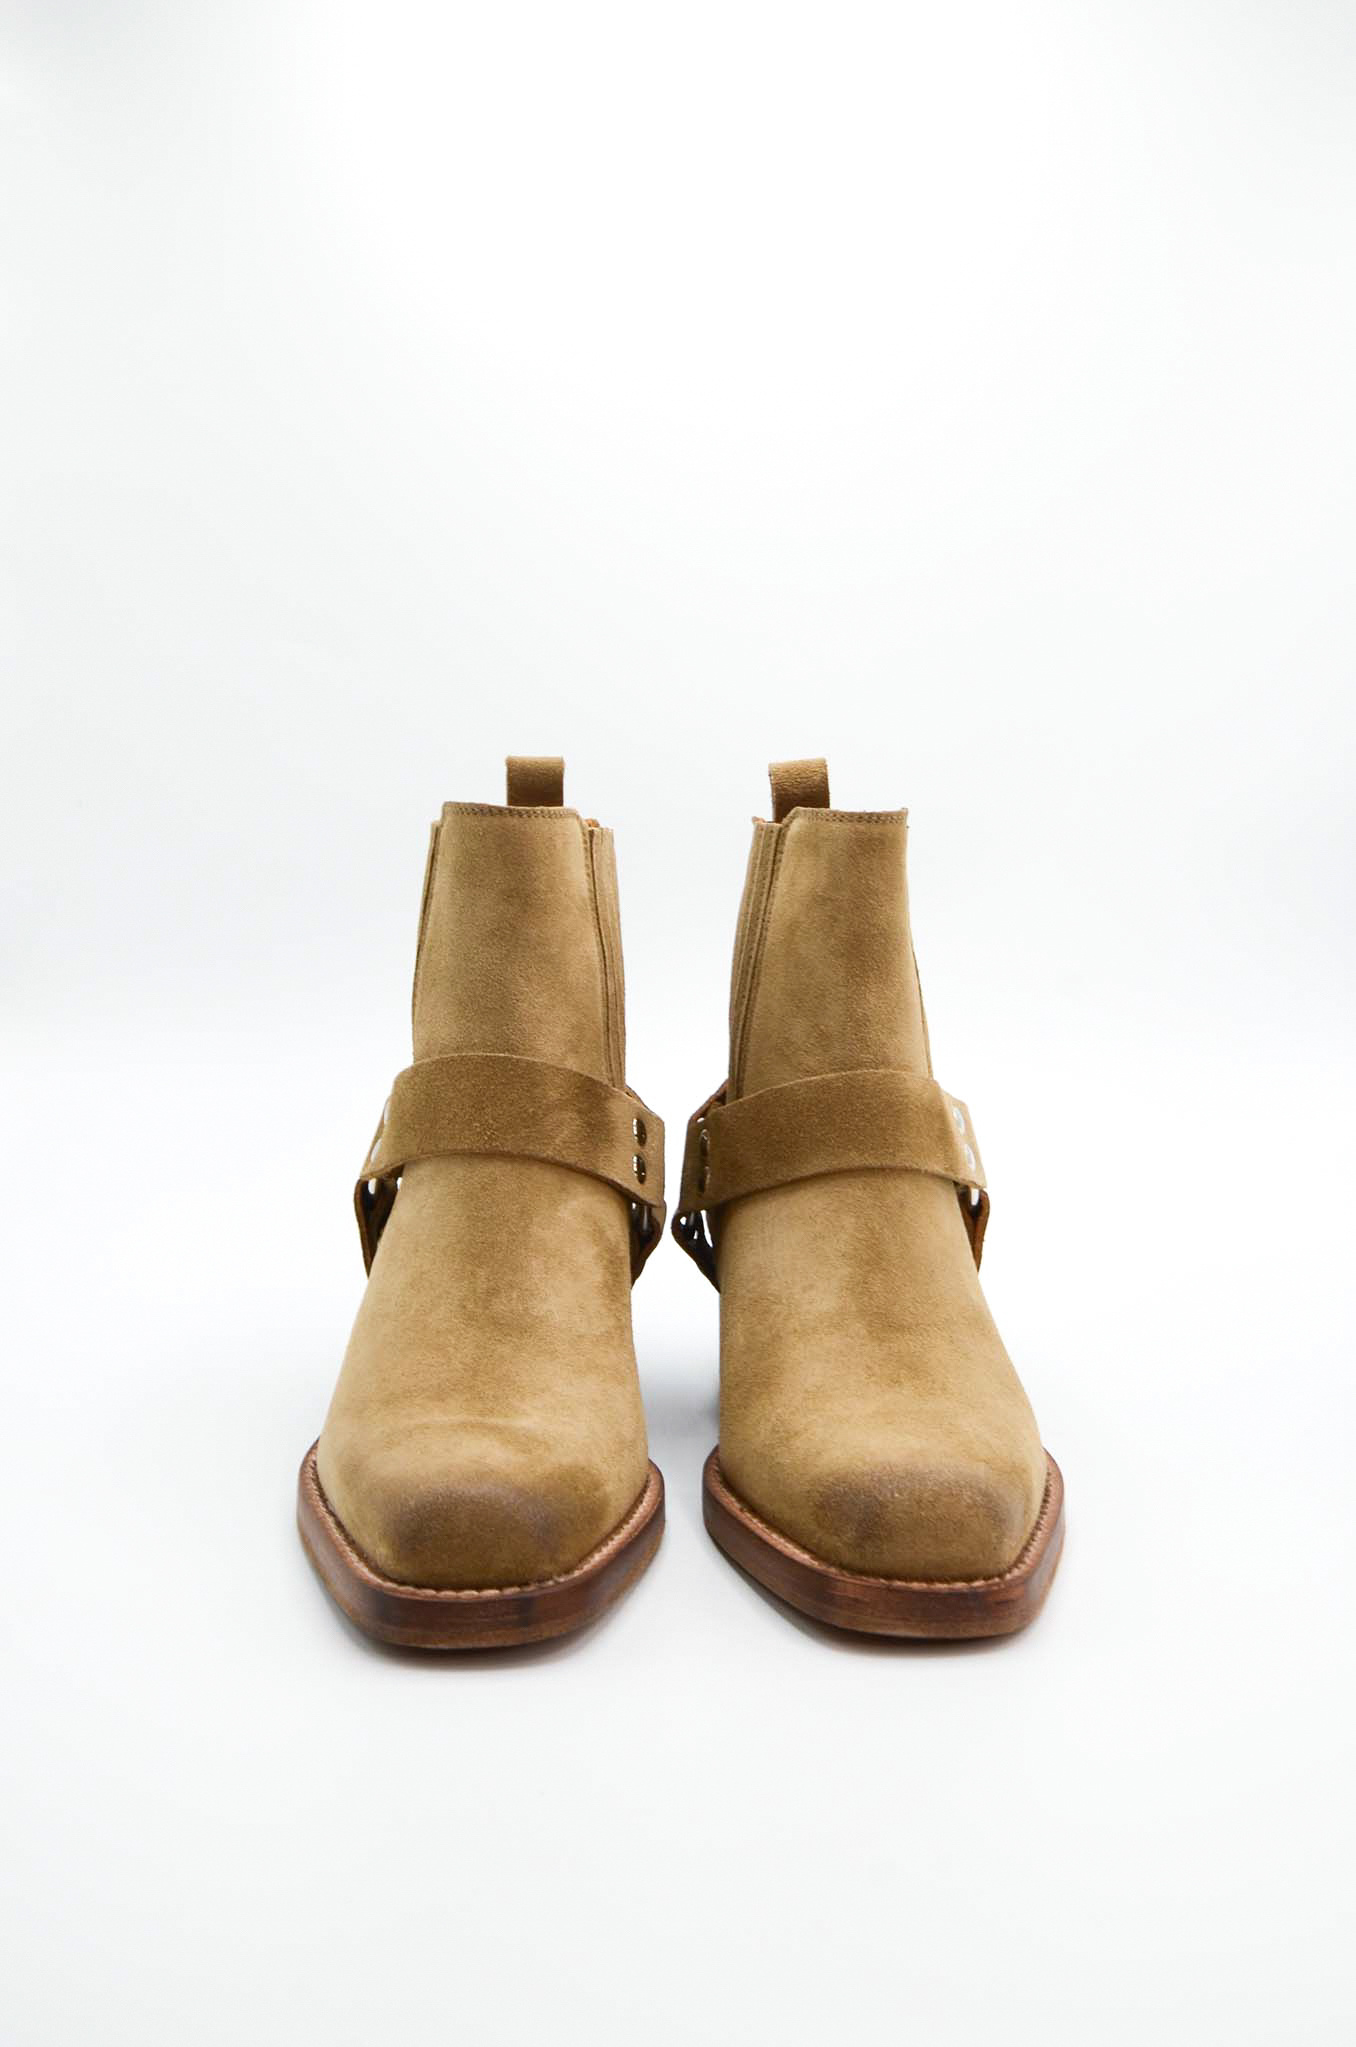 ANKLE BOOTS IN SAND-3